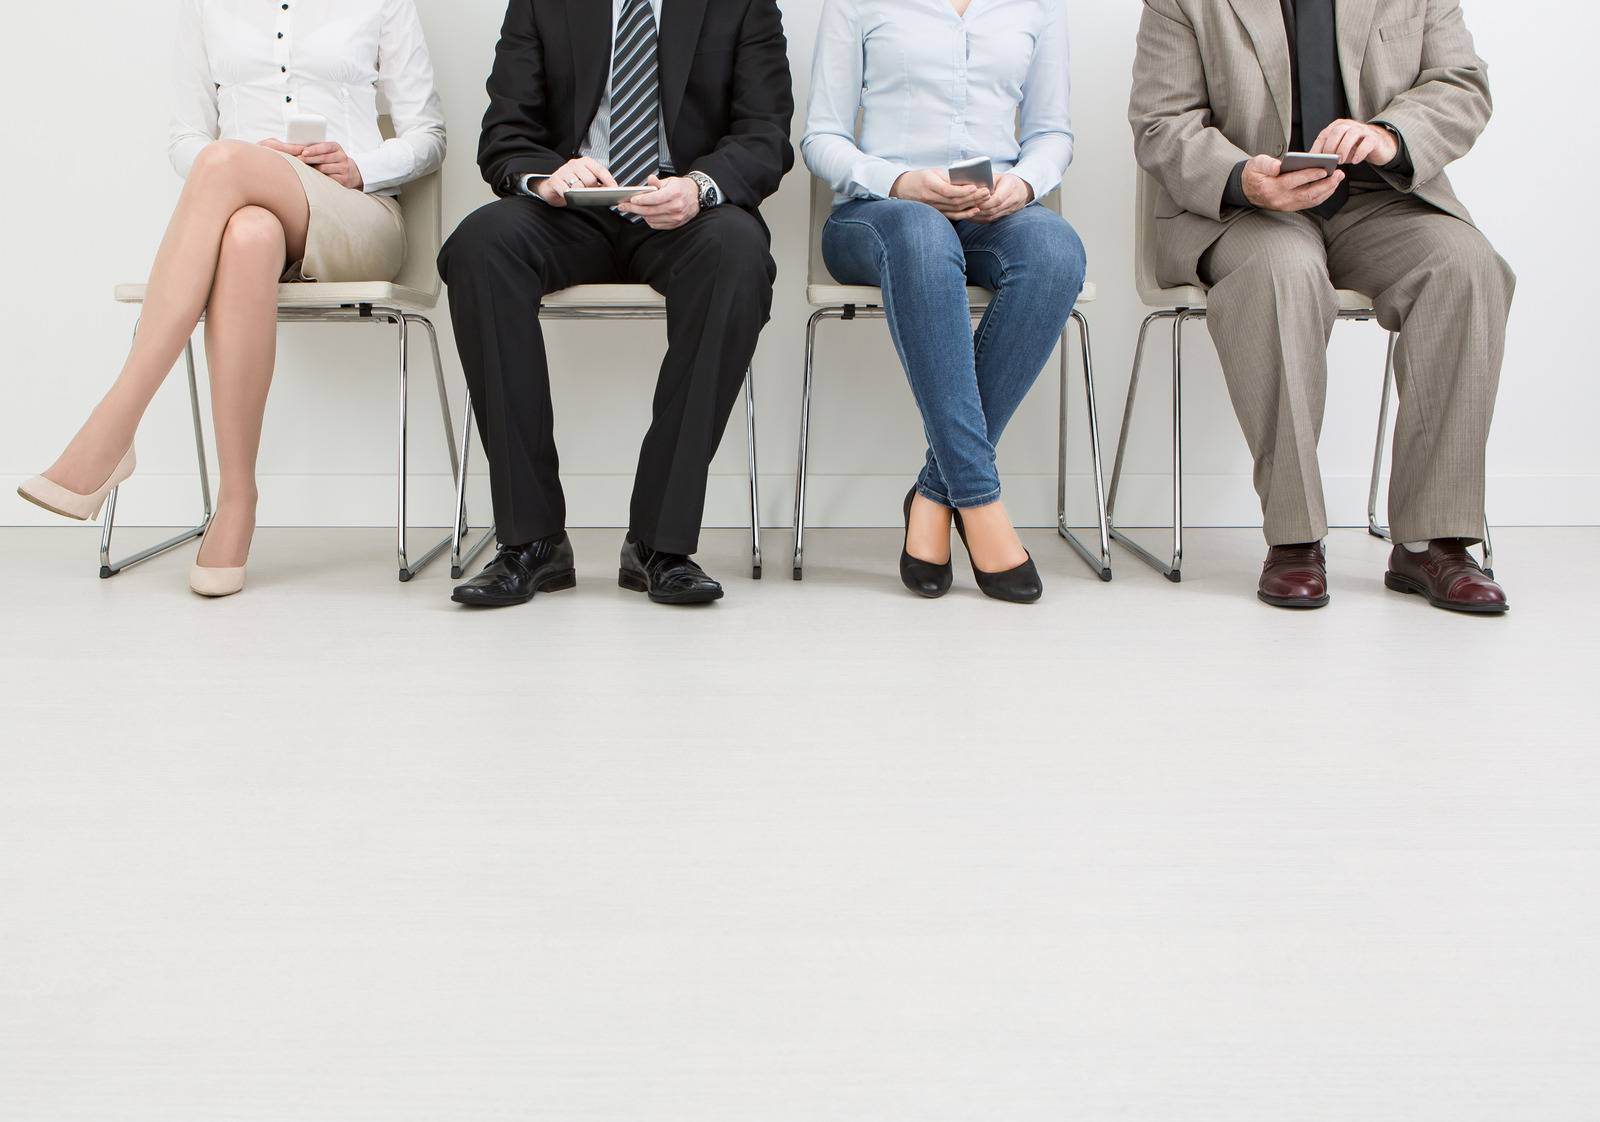 4 Reasons Why Your New Hire Failed: An Inside Look At What Top Recruiters See